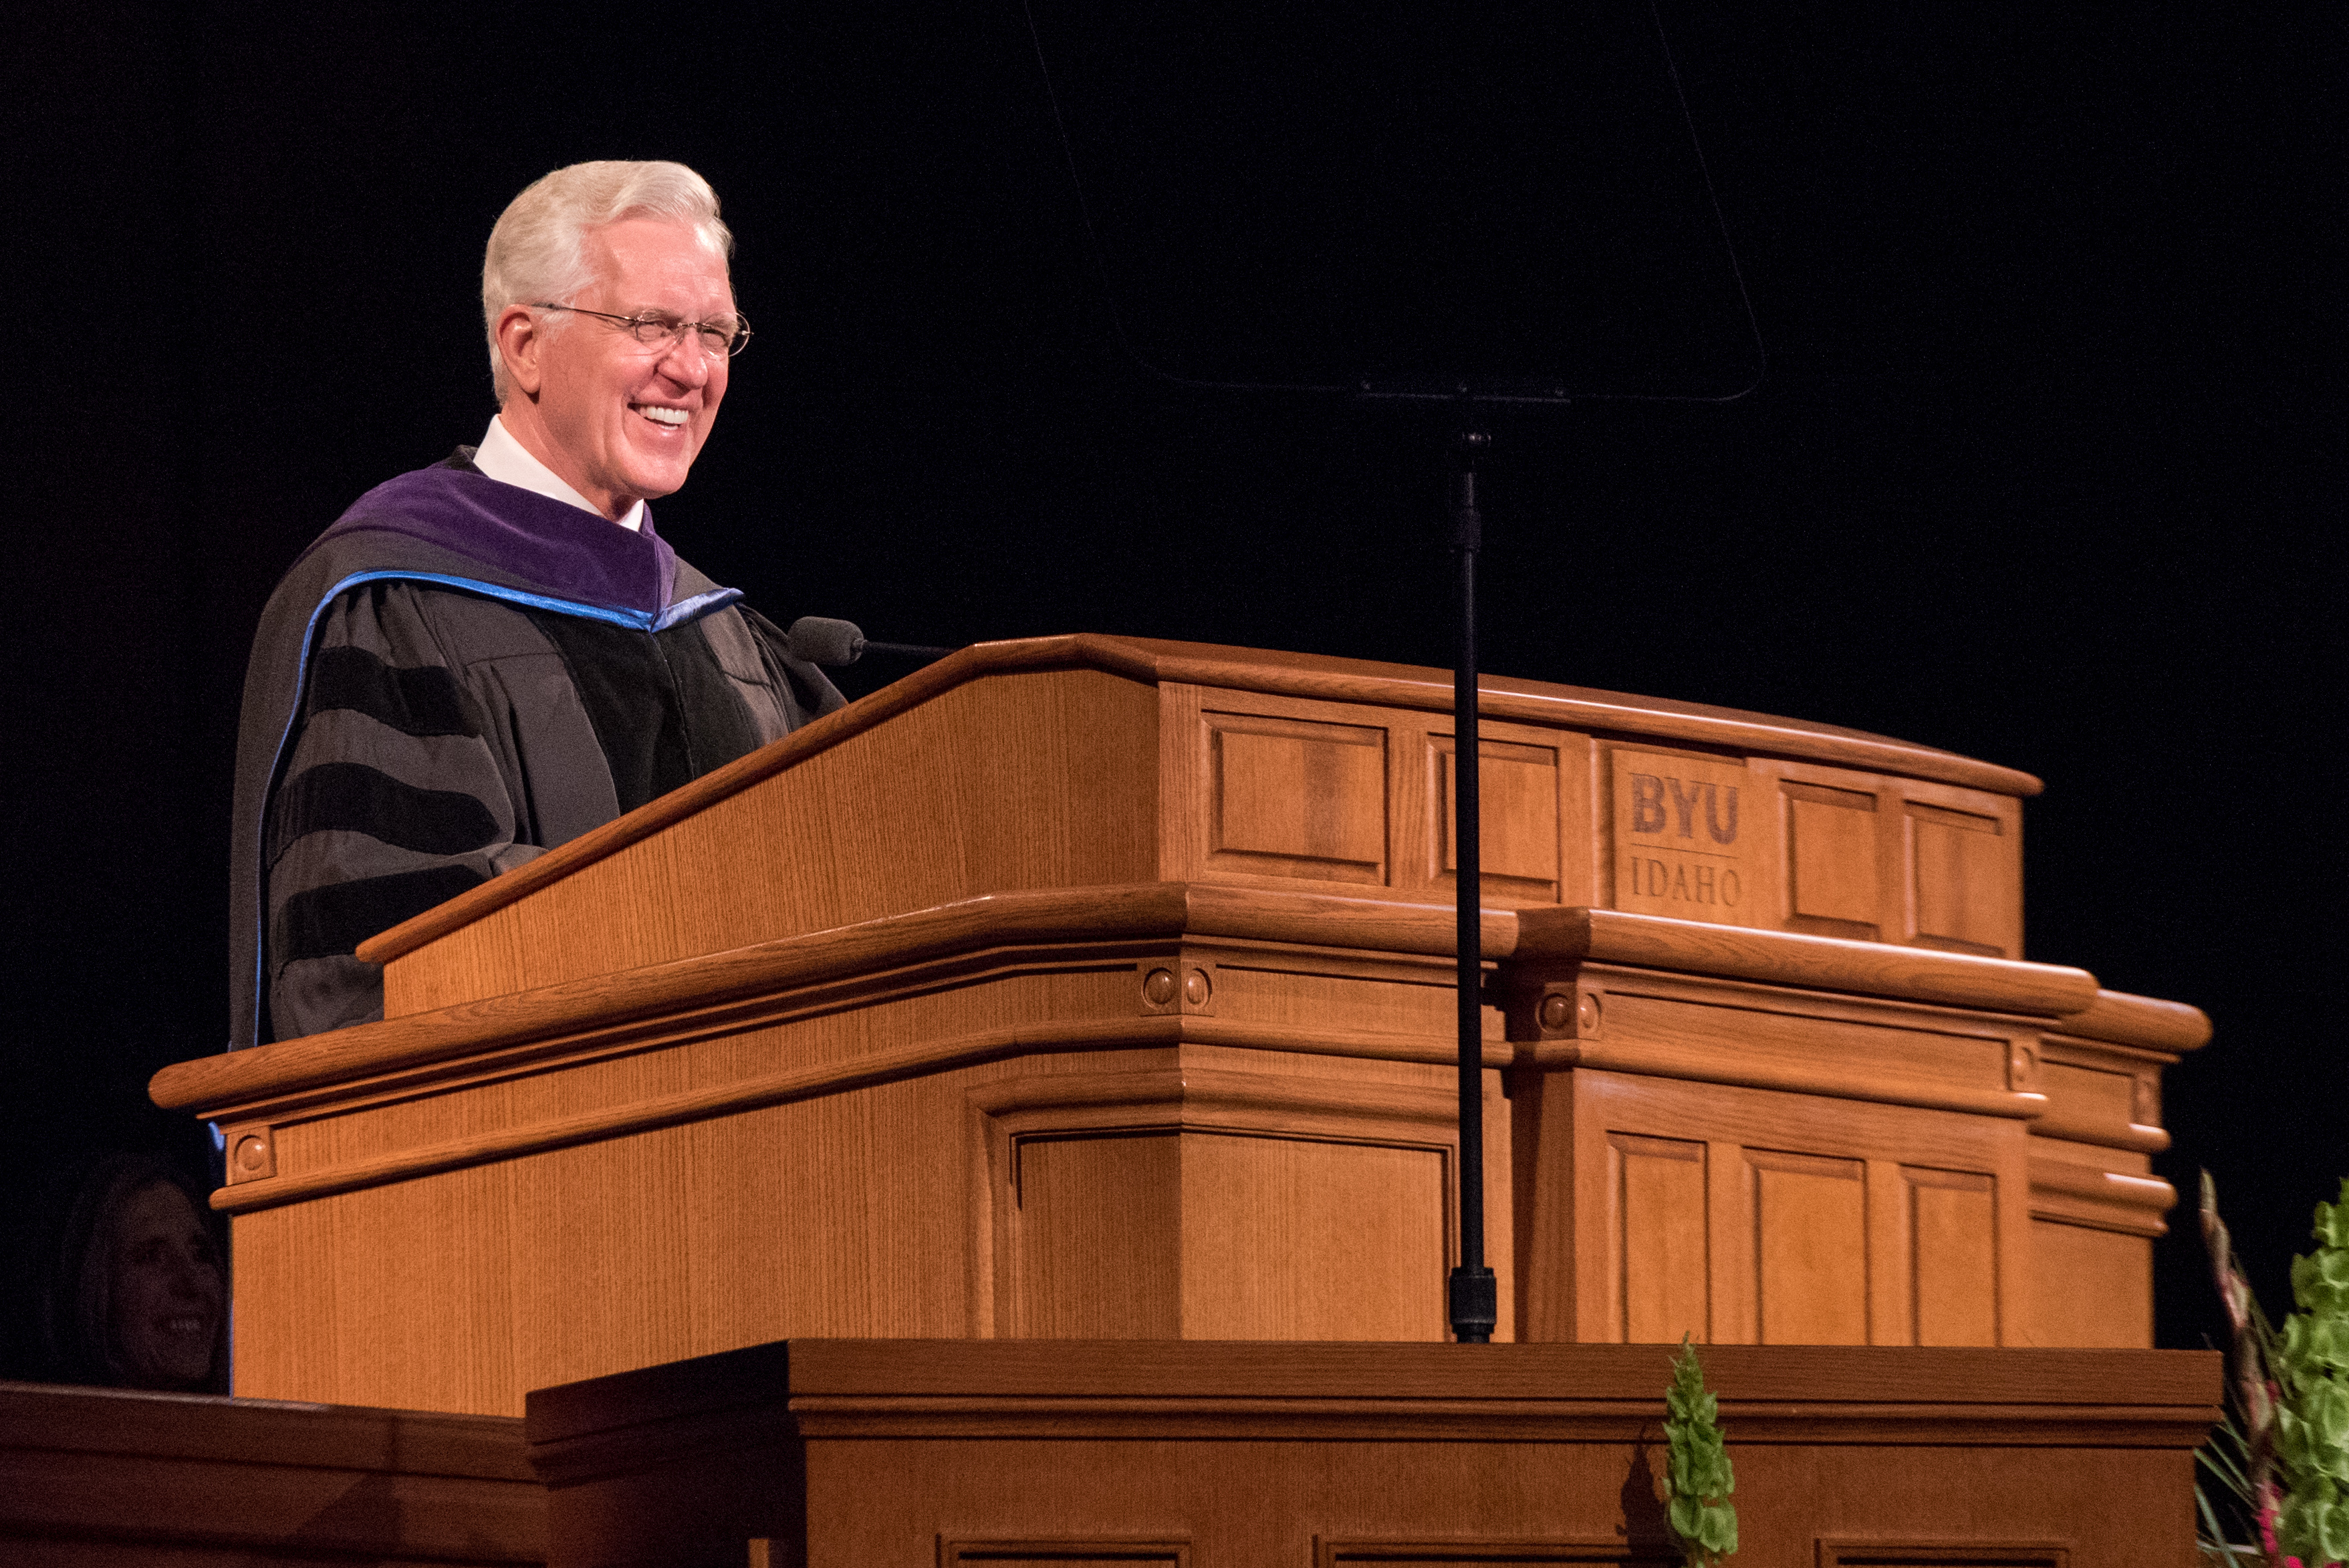 Elder D. Todd Christofferson, a member of the Quorum of the Twelve Apostles, address at the Commencement Service.